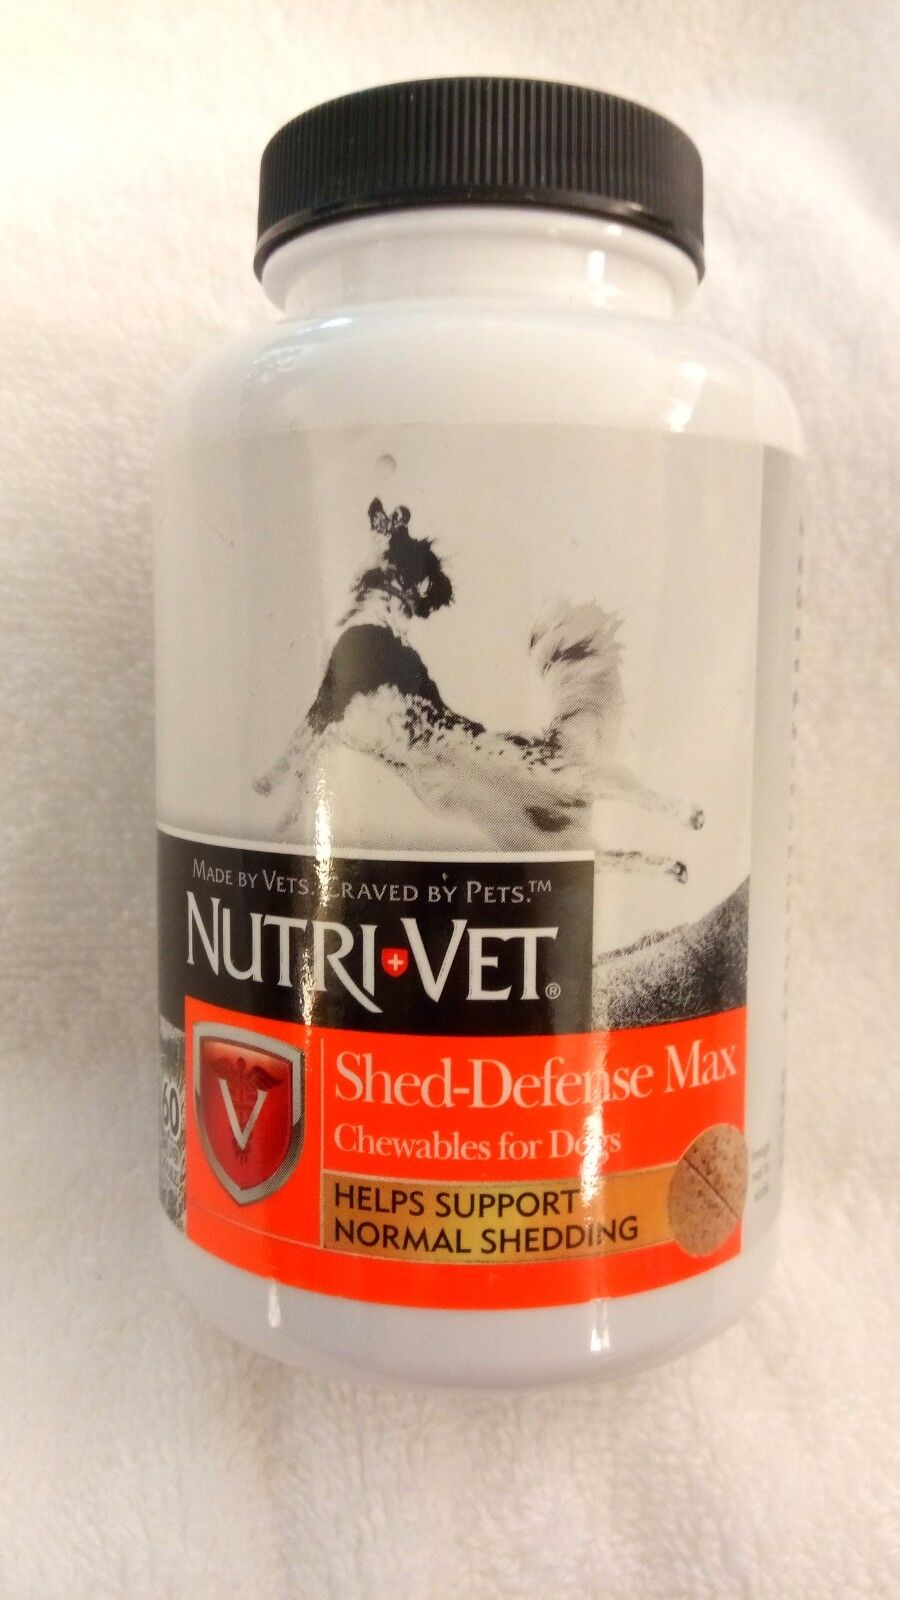 shed defense max chewables dogs